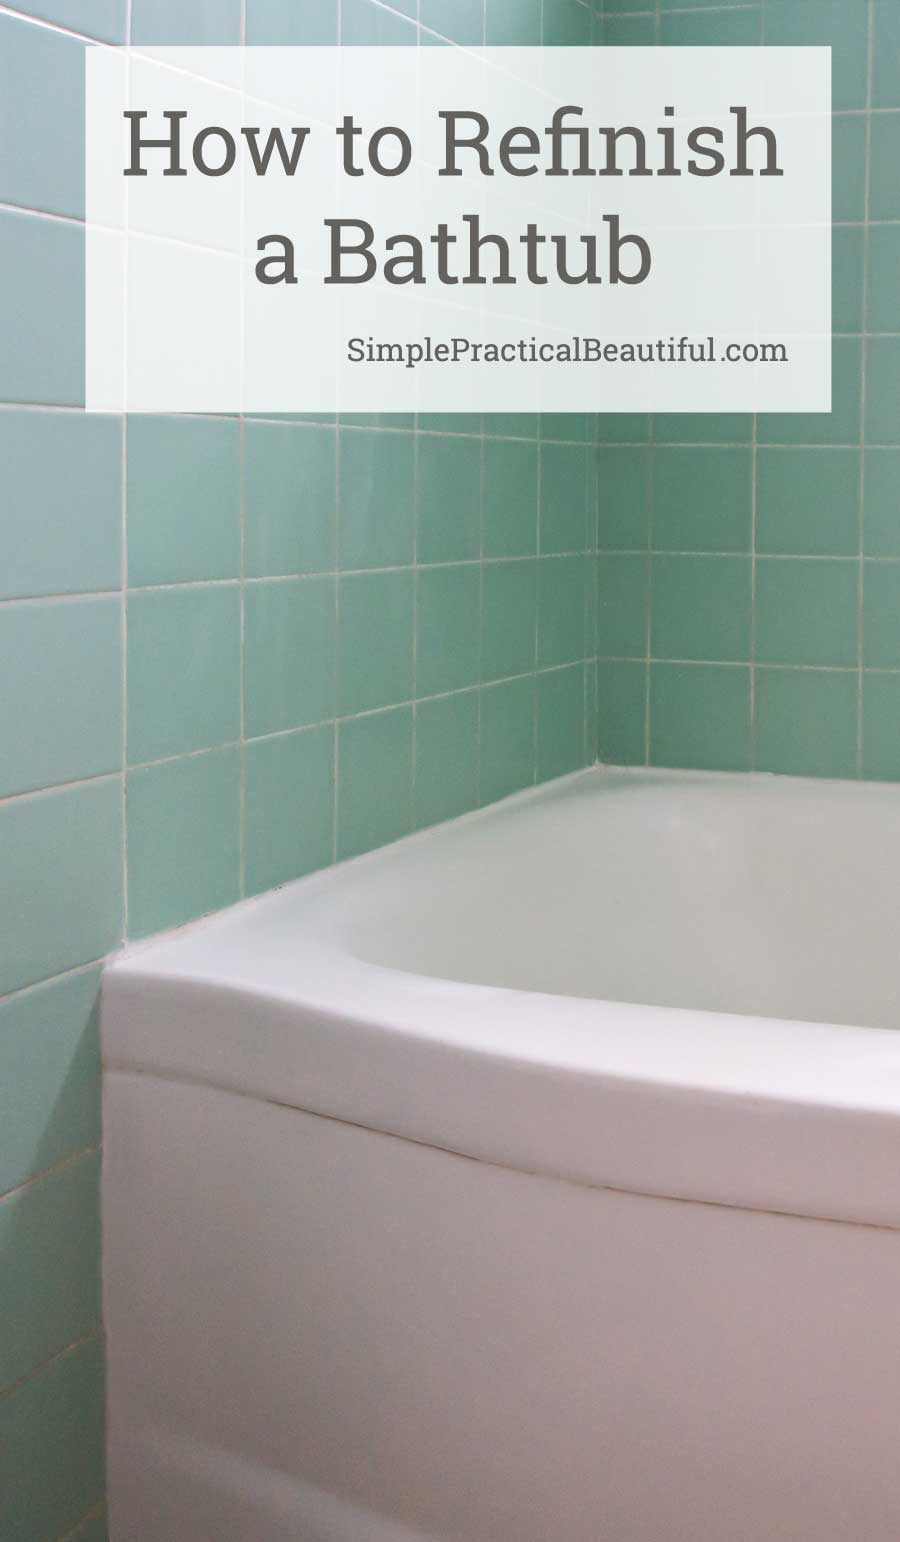 How To Refinish Bathtub With Rustoleum - Bathtub Ideas